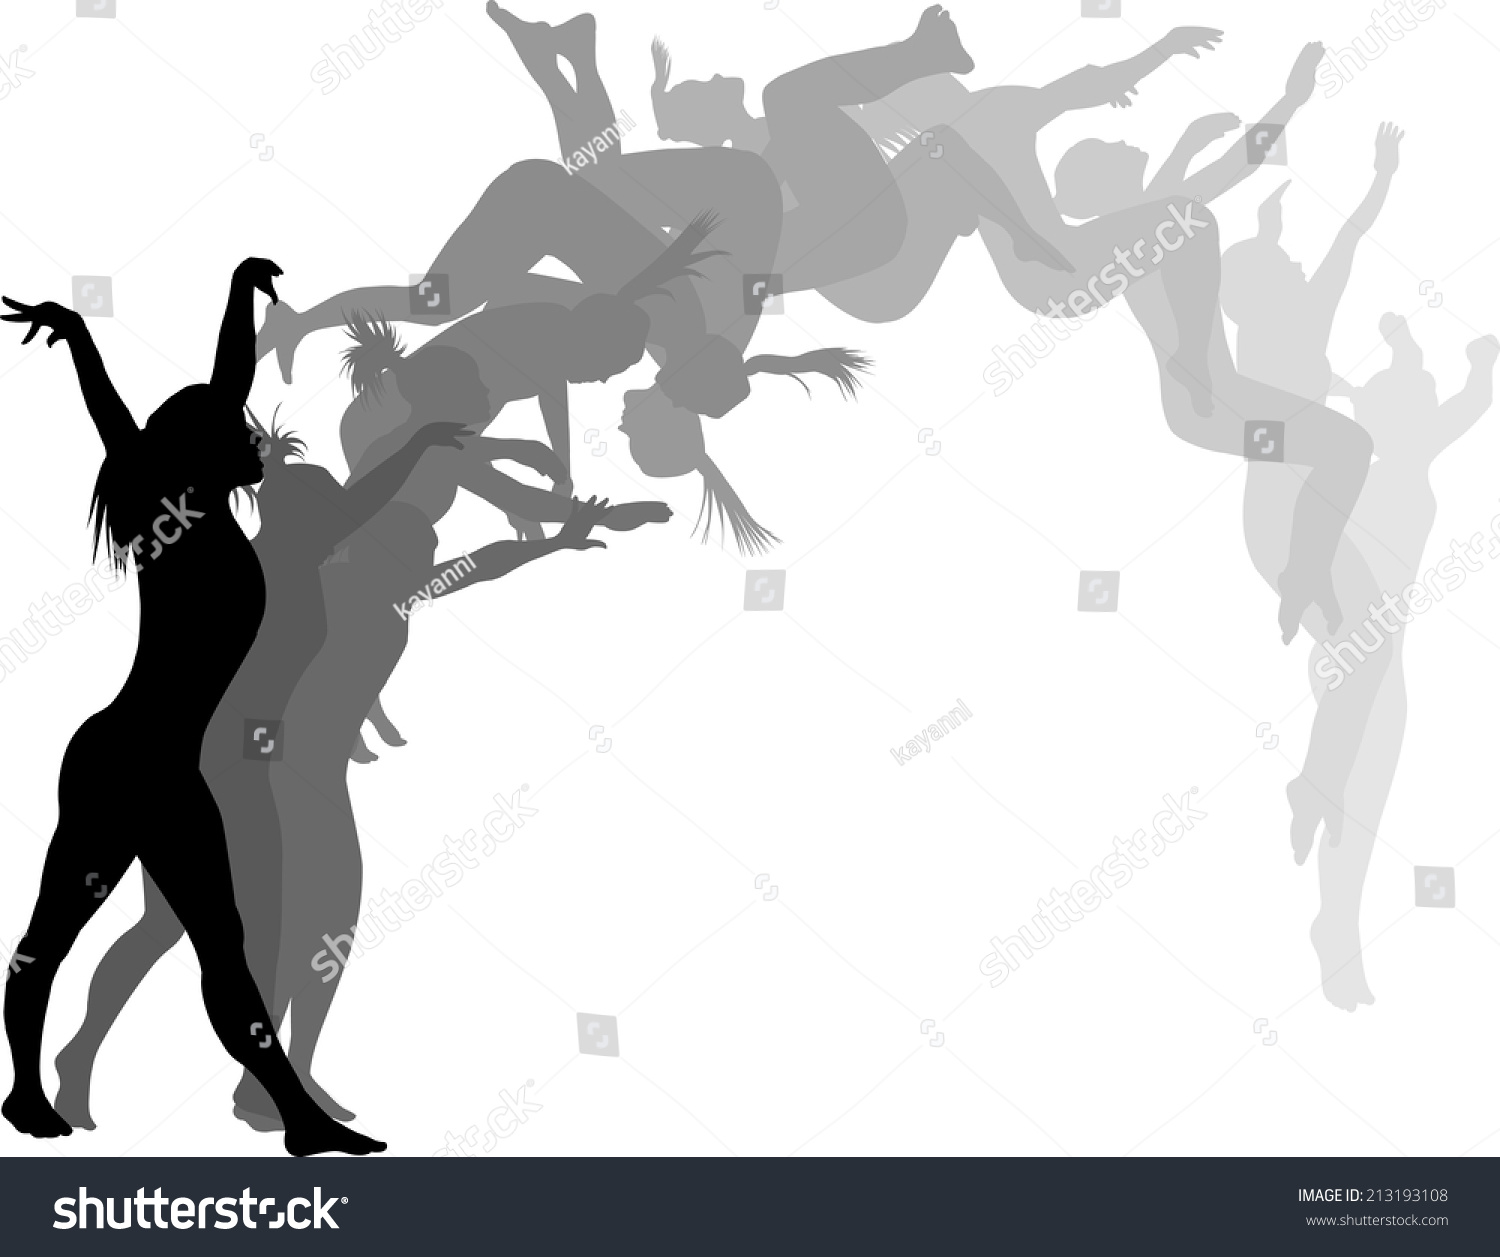 Silhouettes Of A Woman Gymnast Executing A Back Flip